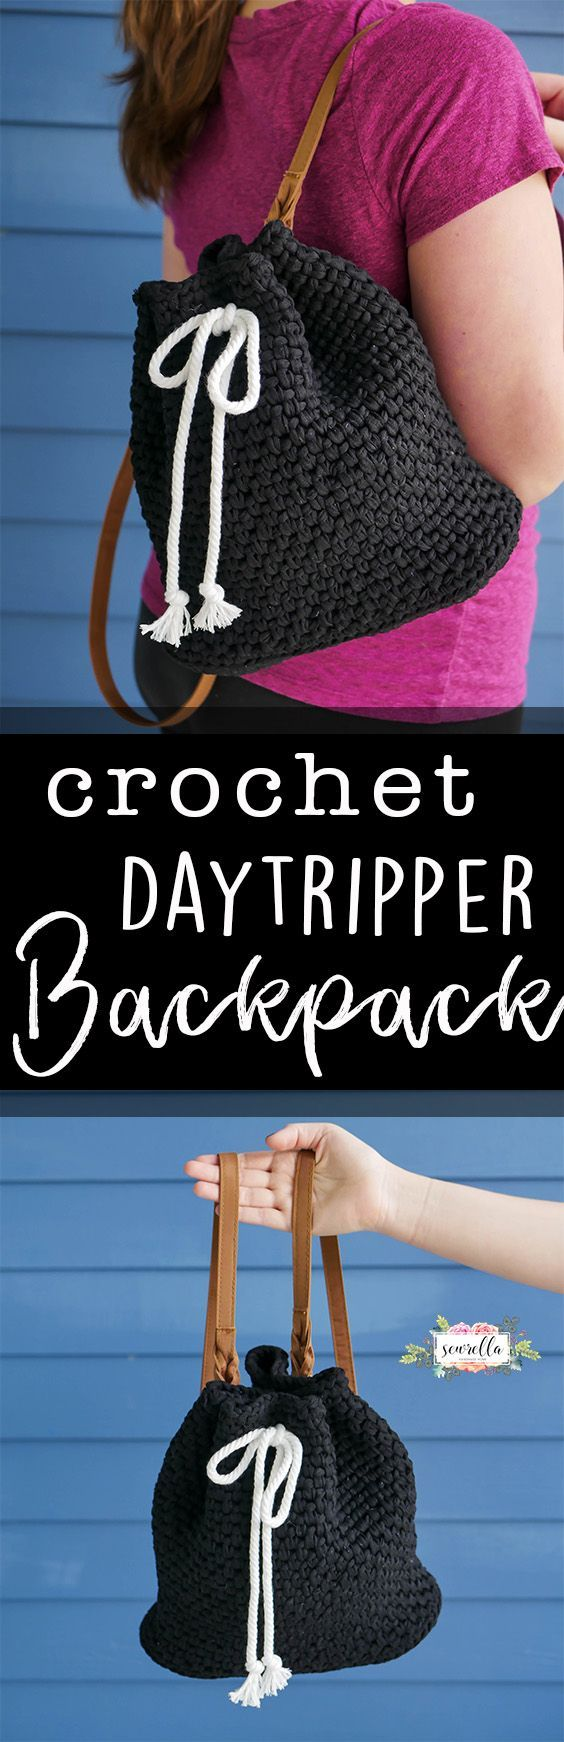 Make this crochet Daytripper Backpack - the perfect easy beginner backpack pattern for moms on the go!